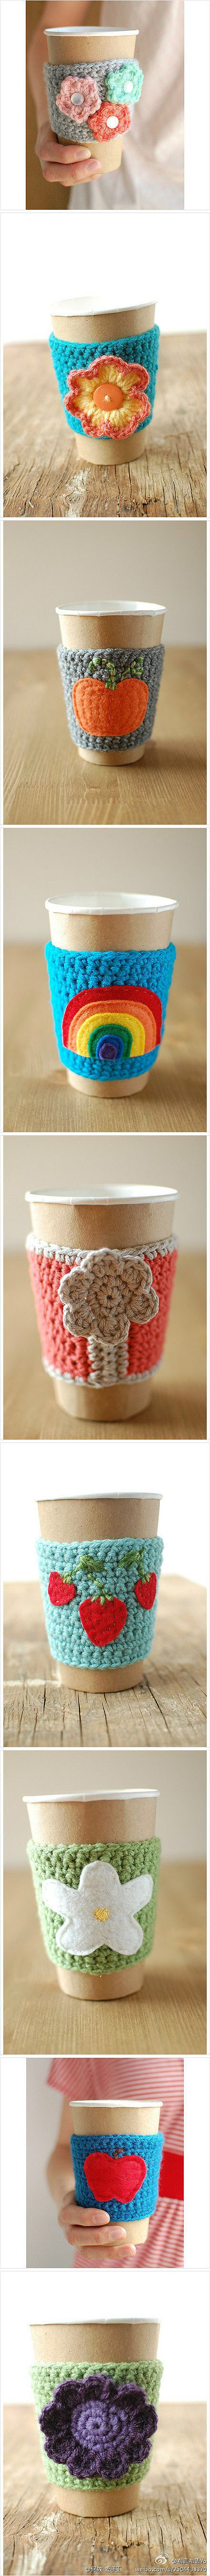 Crochet cup cozy                                                                                                                                                                                 More